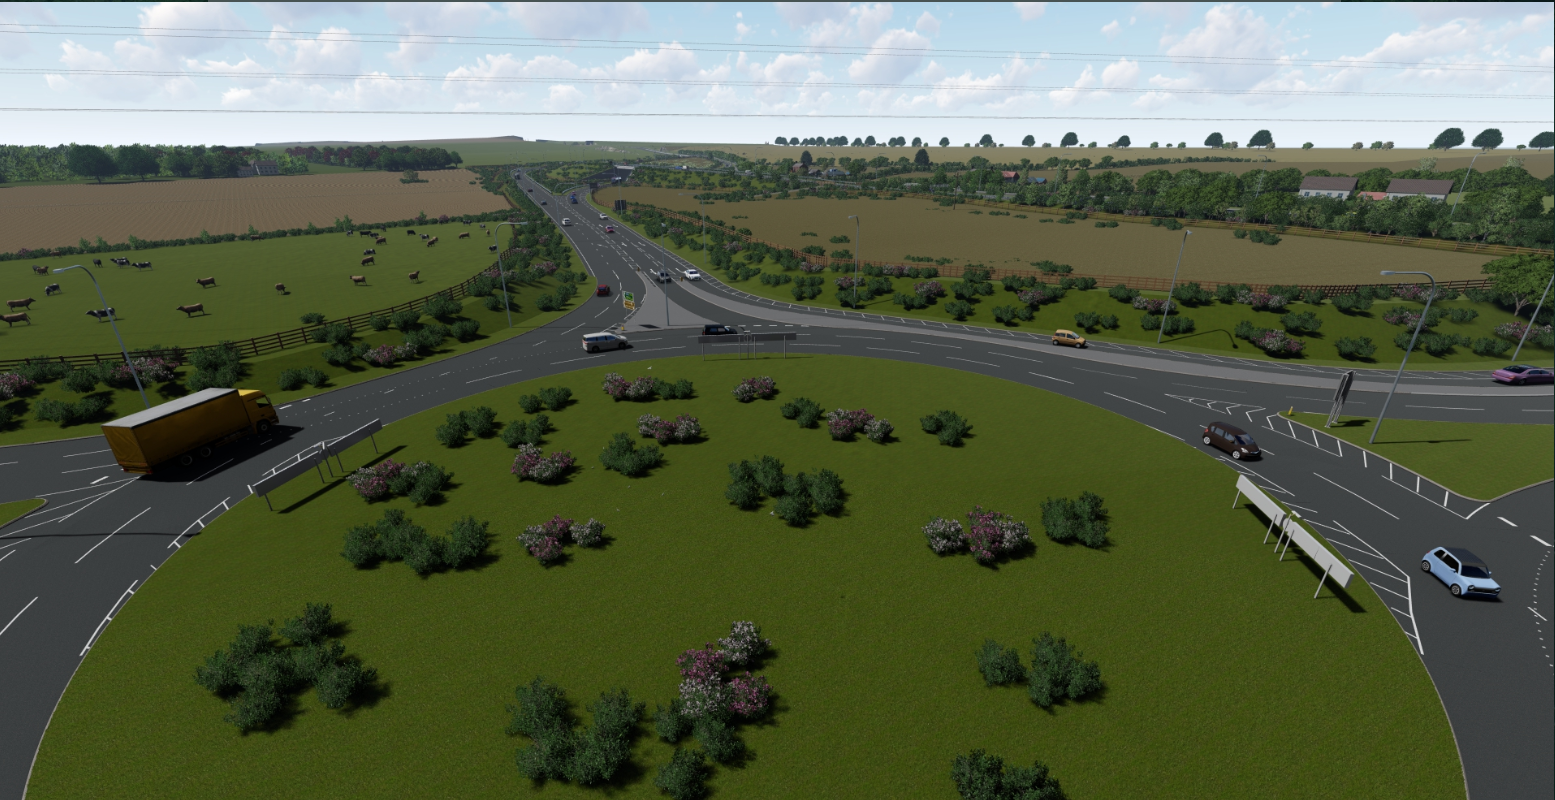 View of the new A1079 roundabout looking south towards the A164-A1079 merge